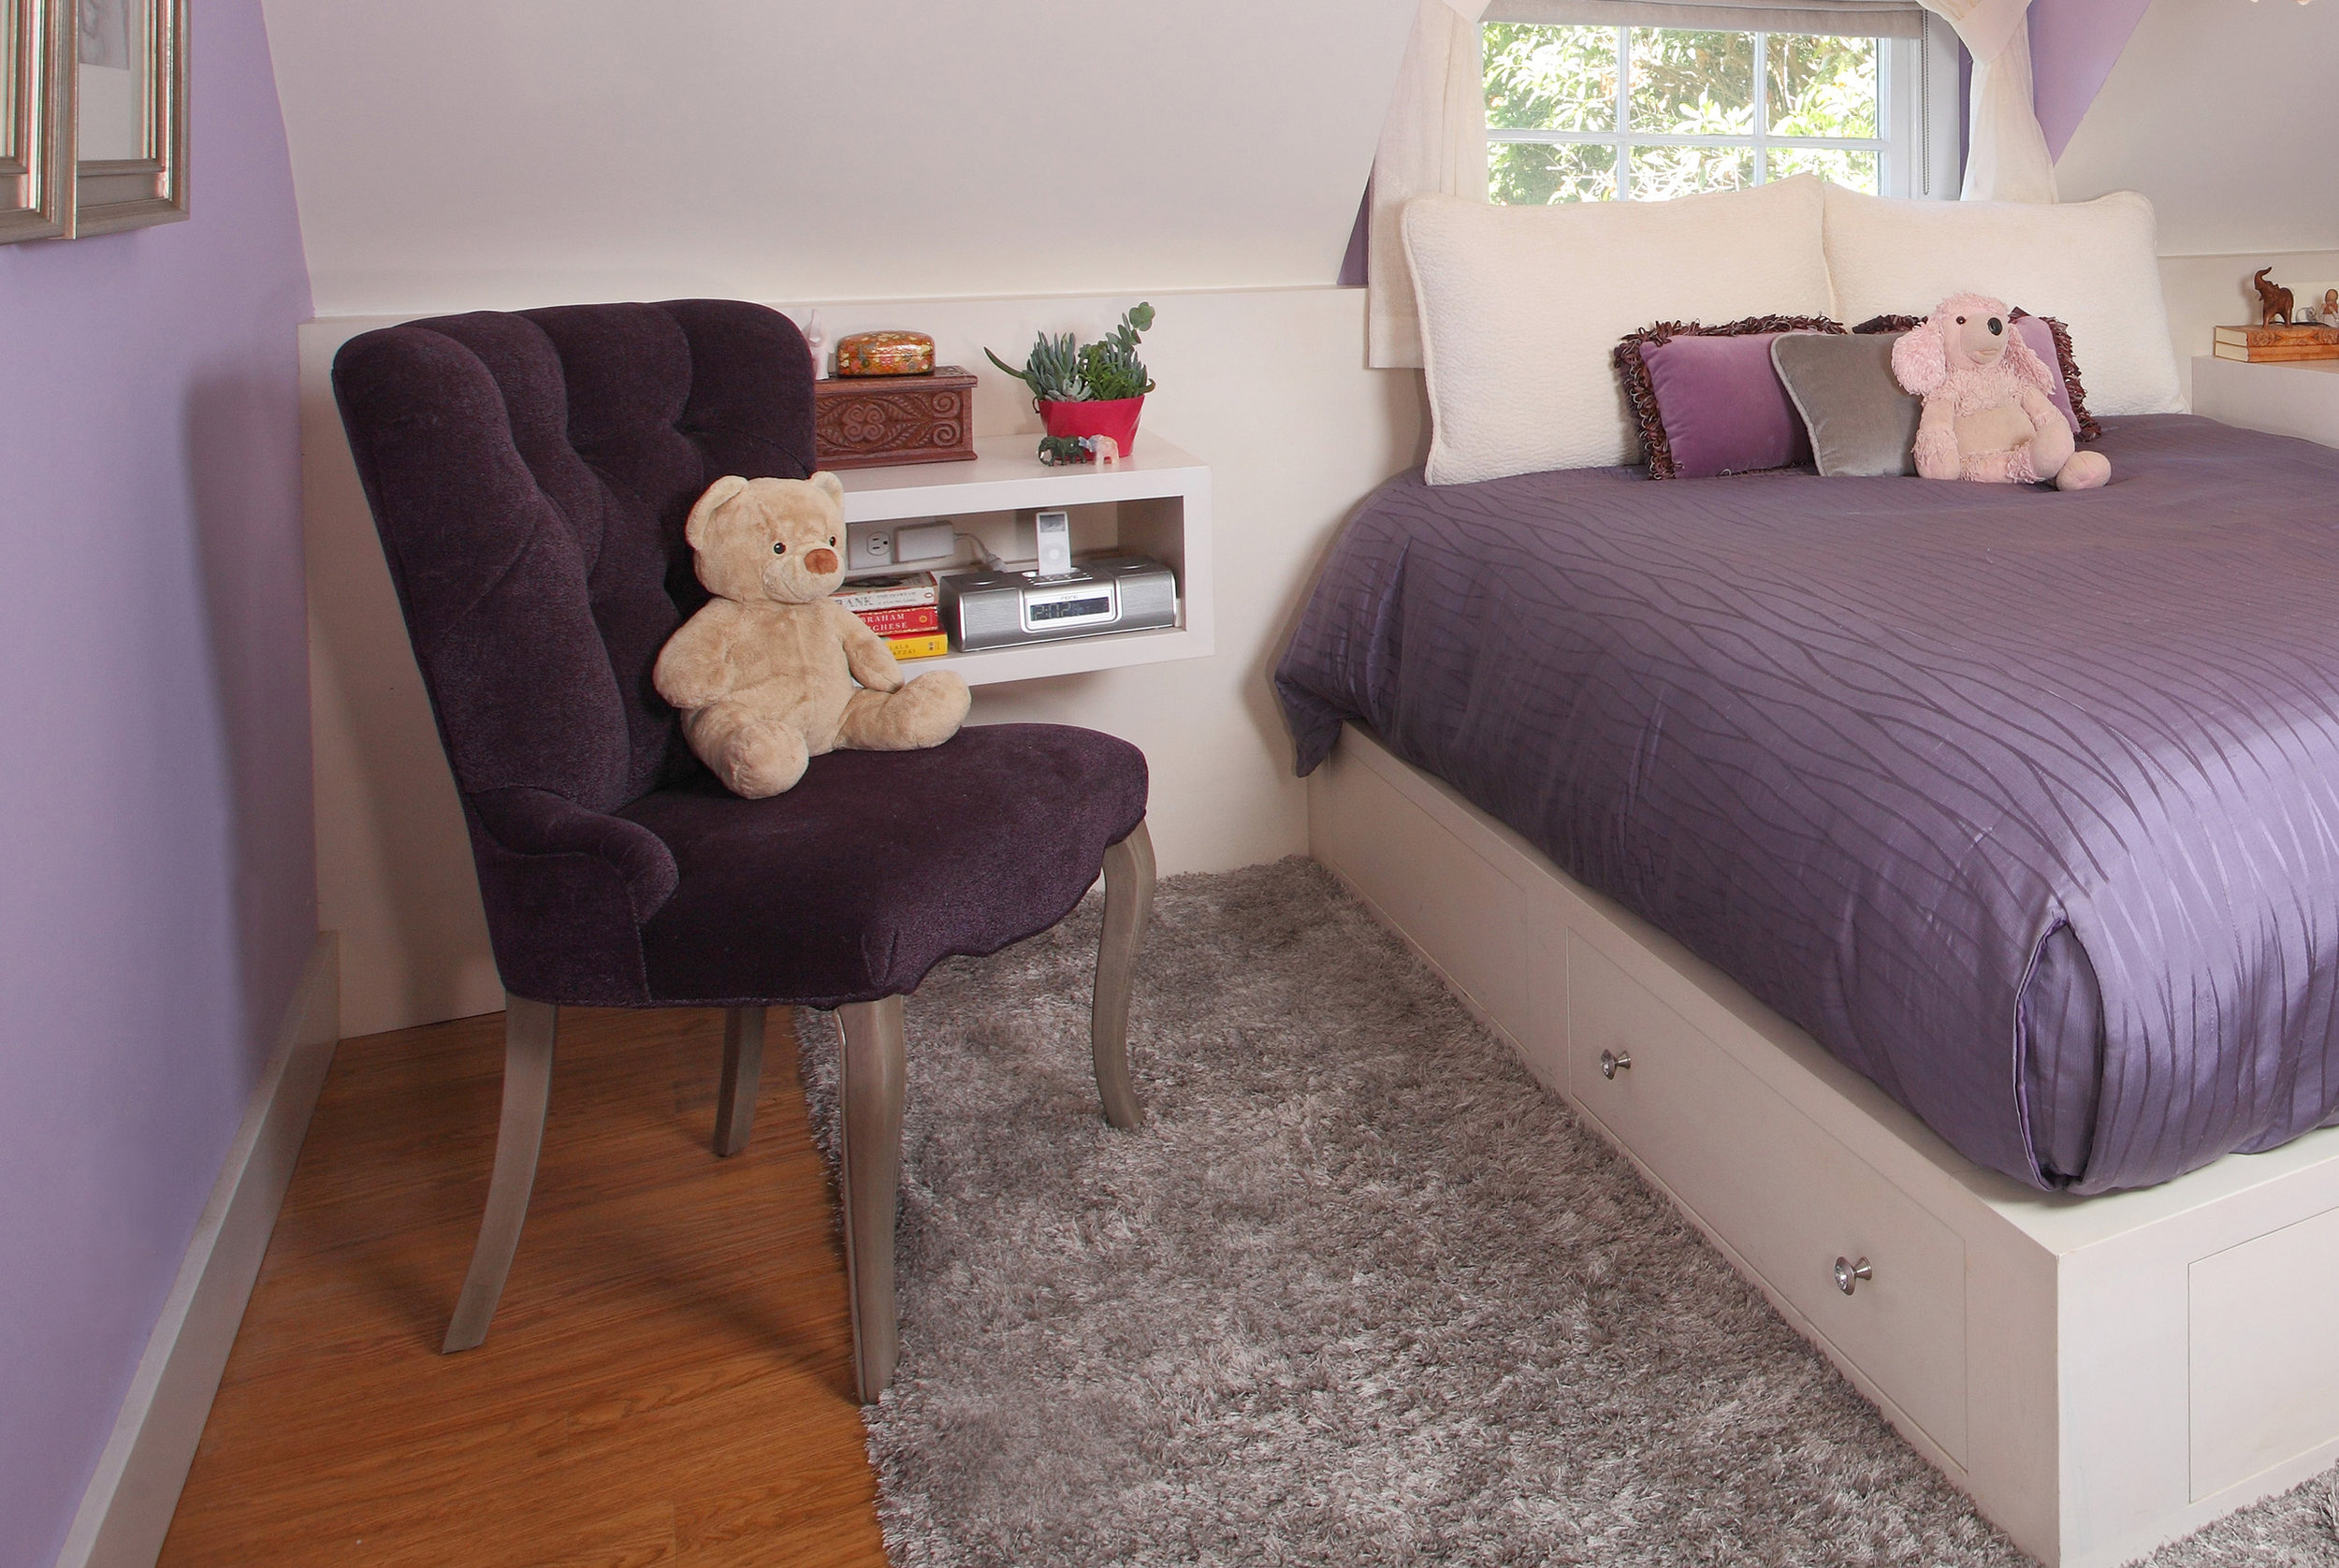 Sarah-barnard-design-childs-bedroom.jpg